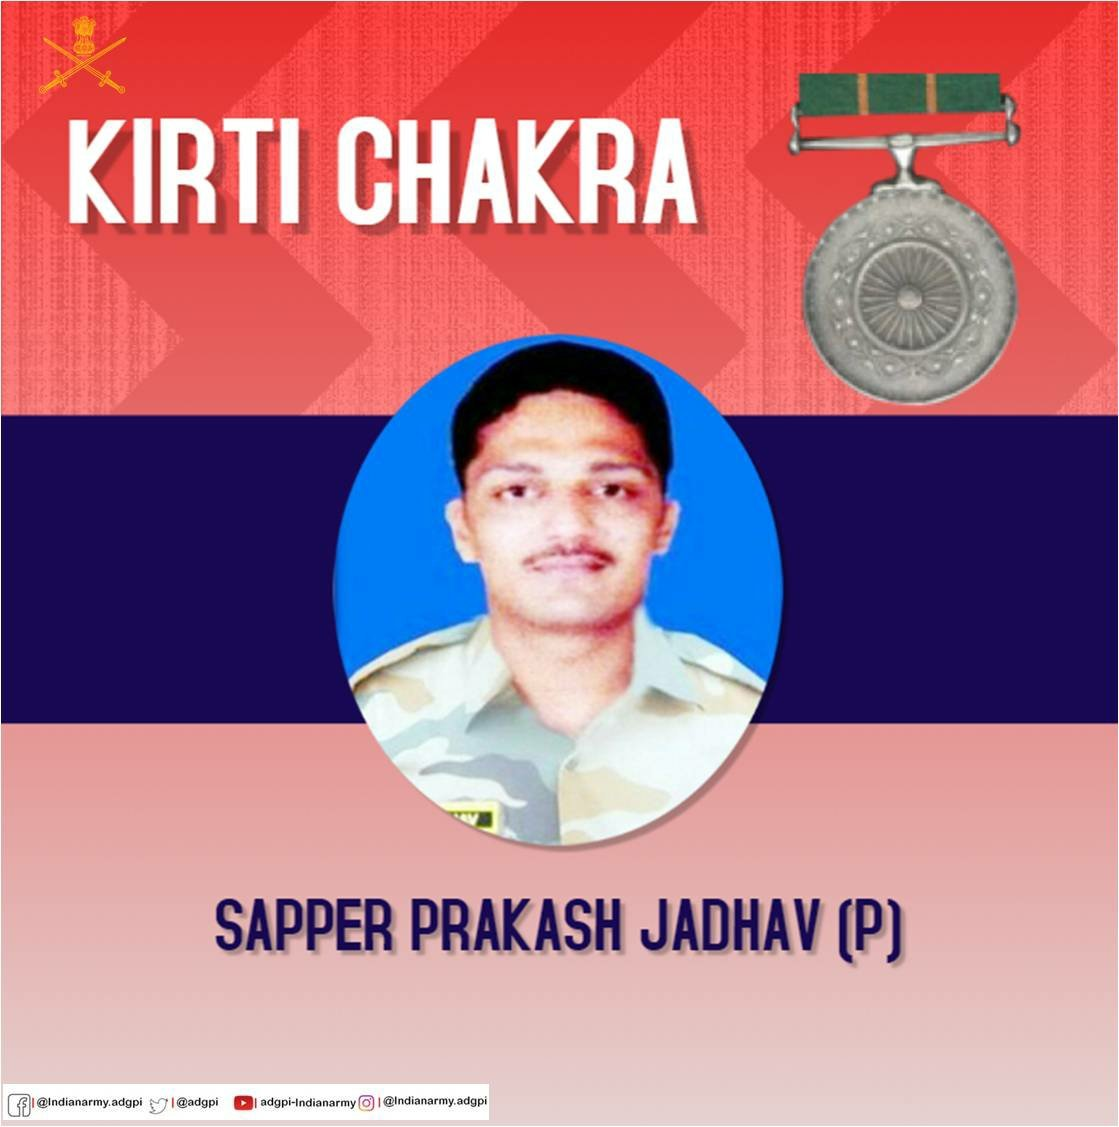 #KirtiChakra awarded to Sapper Prakash Jadhav (P) for conspicuous gallantry.  #BraveSonOfIndia  #IndependenceDay2019 https://t.co/zTRfooyiYK